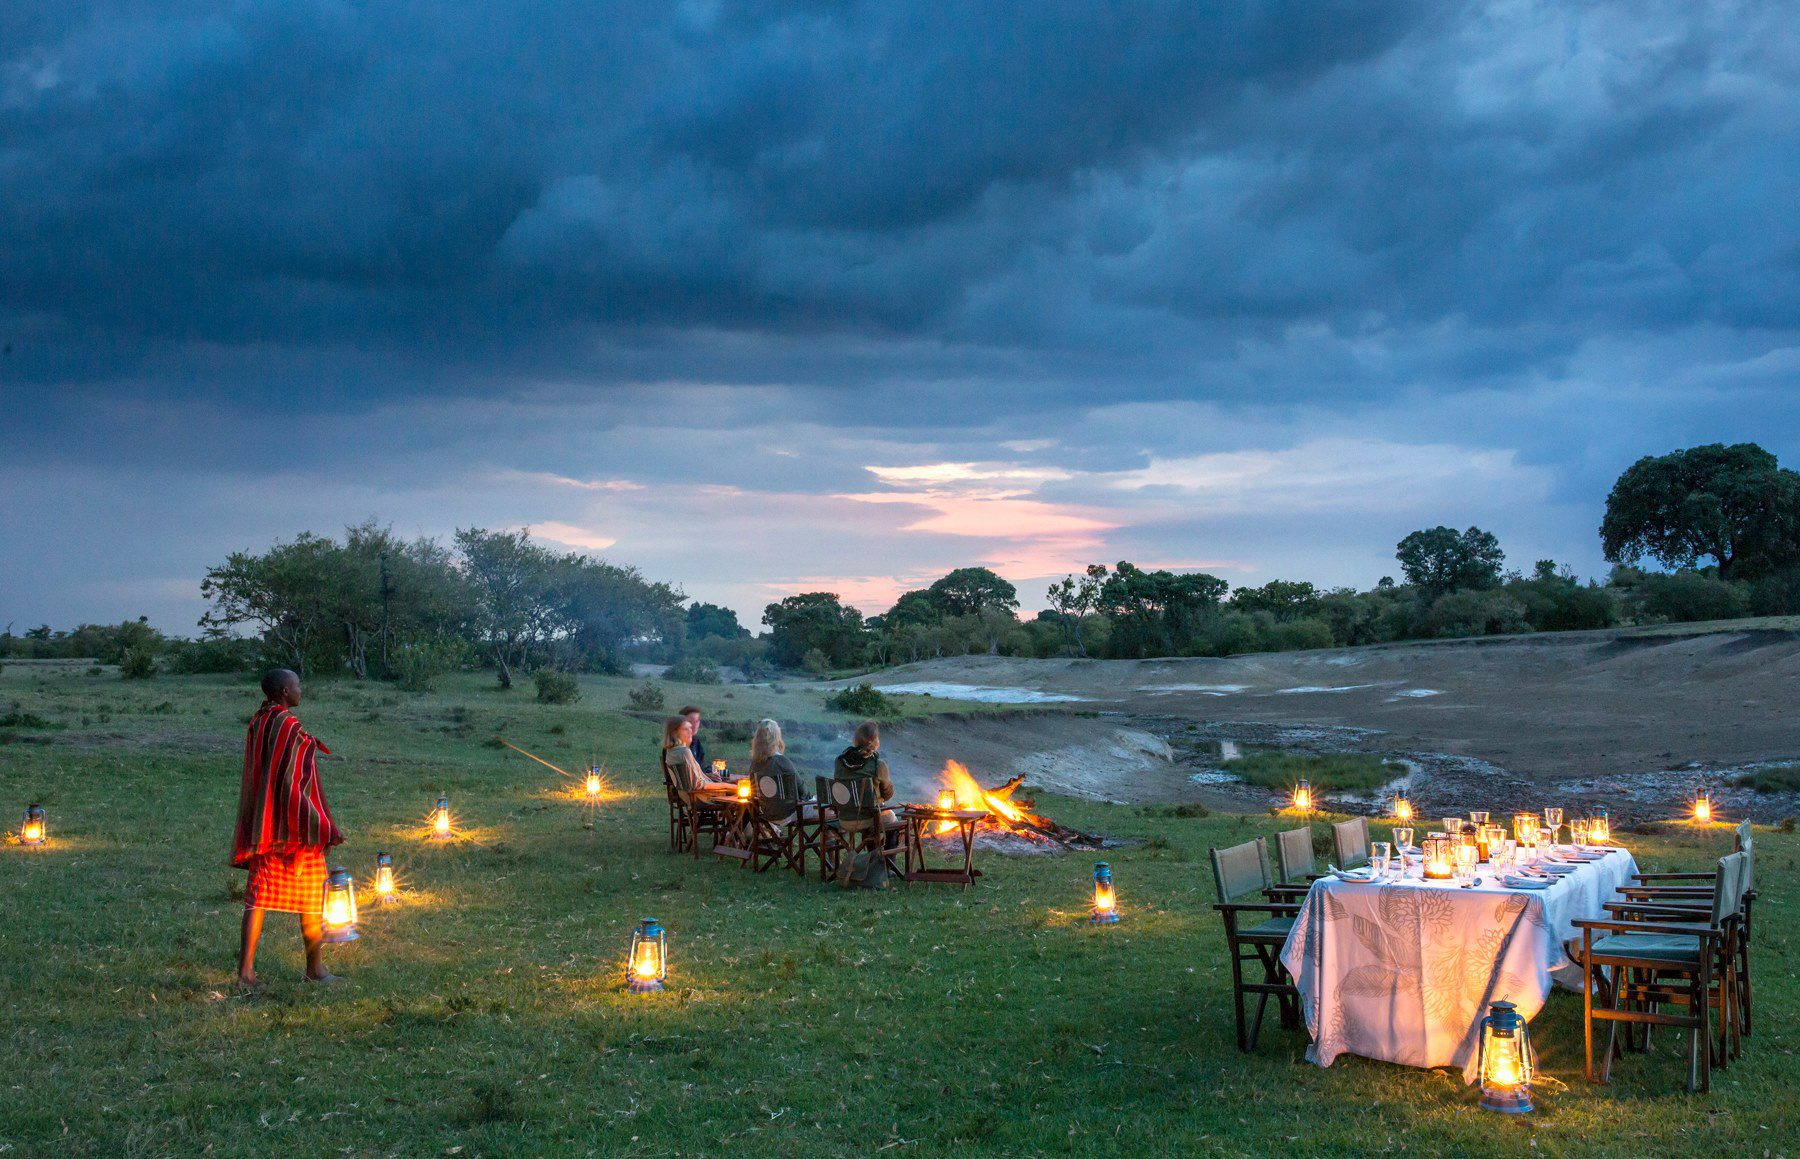 Kenya safari evening dinner on the grass at richard's river camp overlooking the river with candles